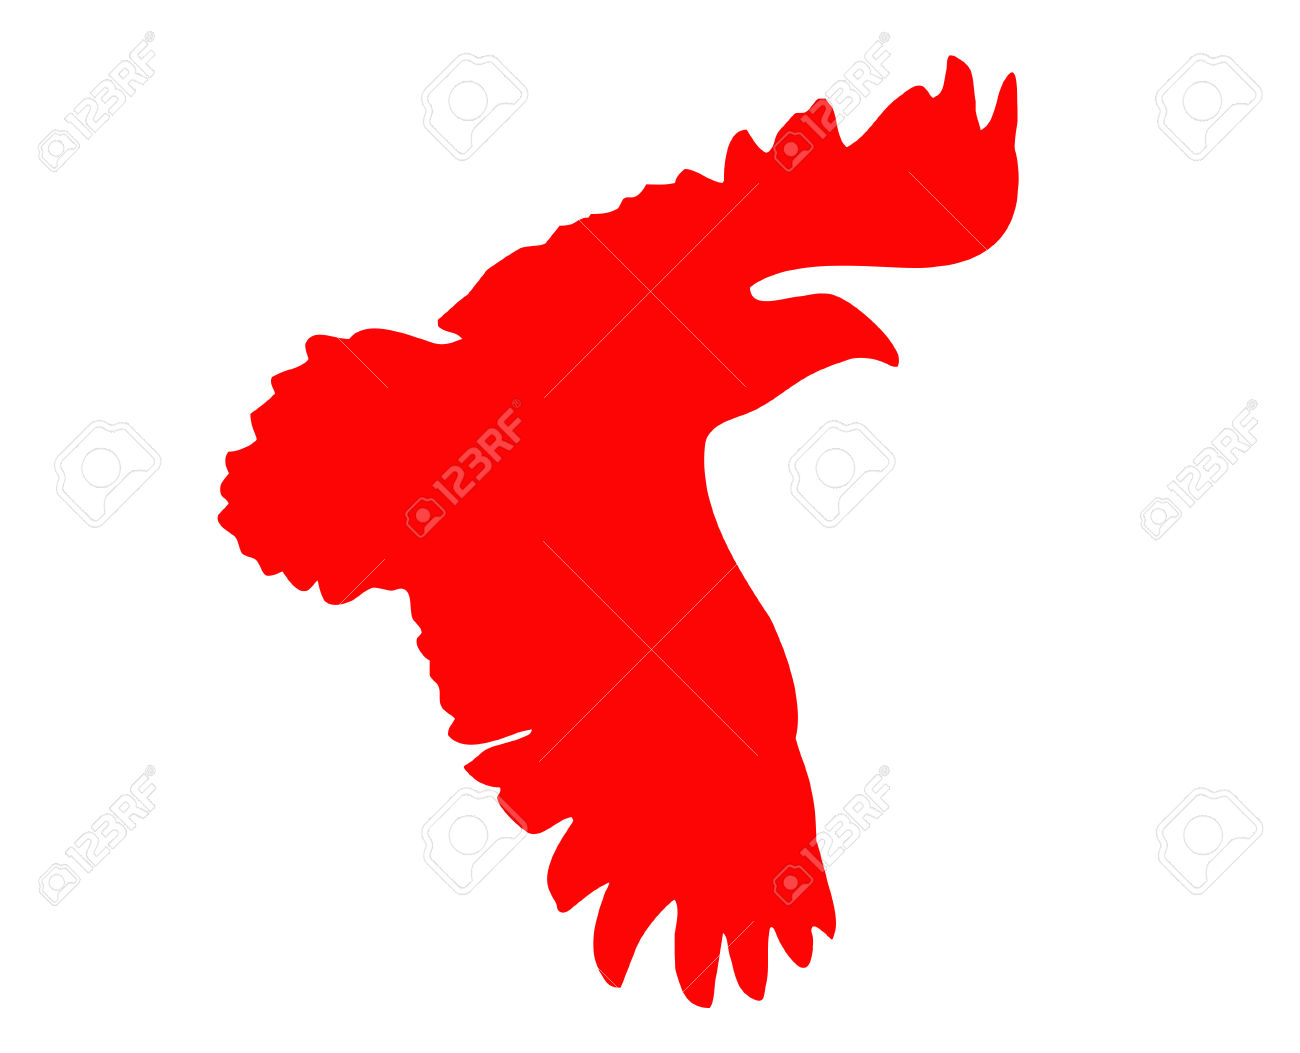 Clipart of red bird silhouette.